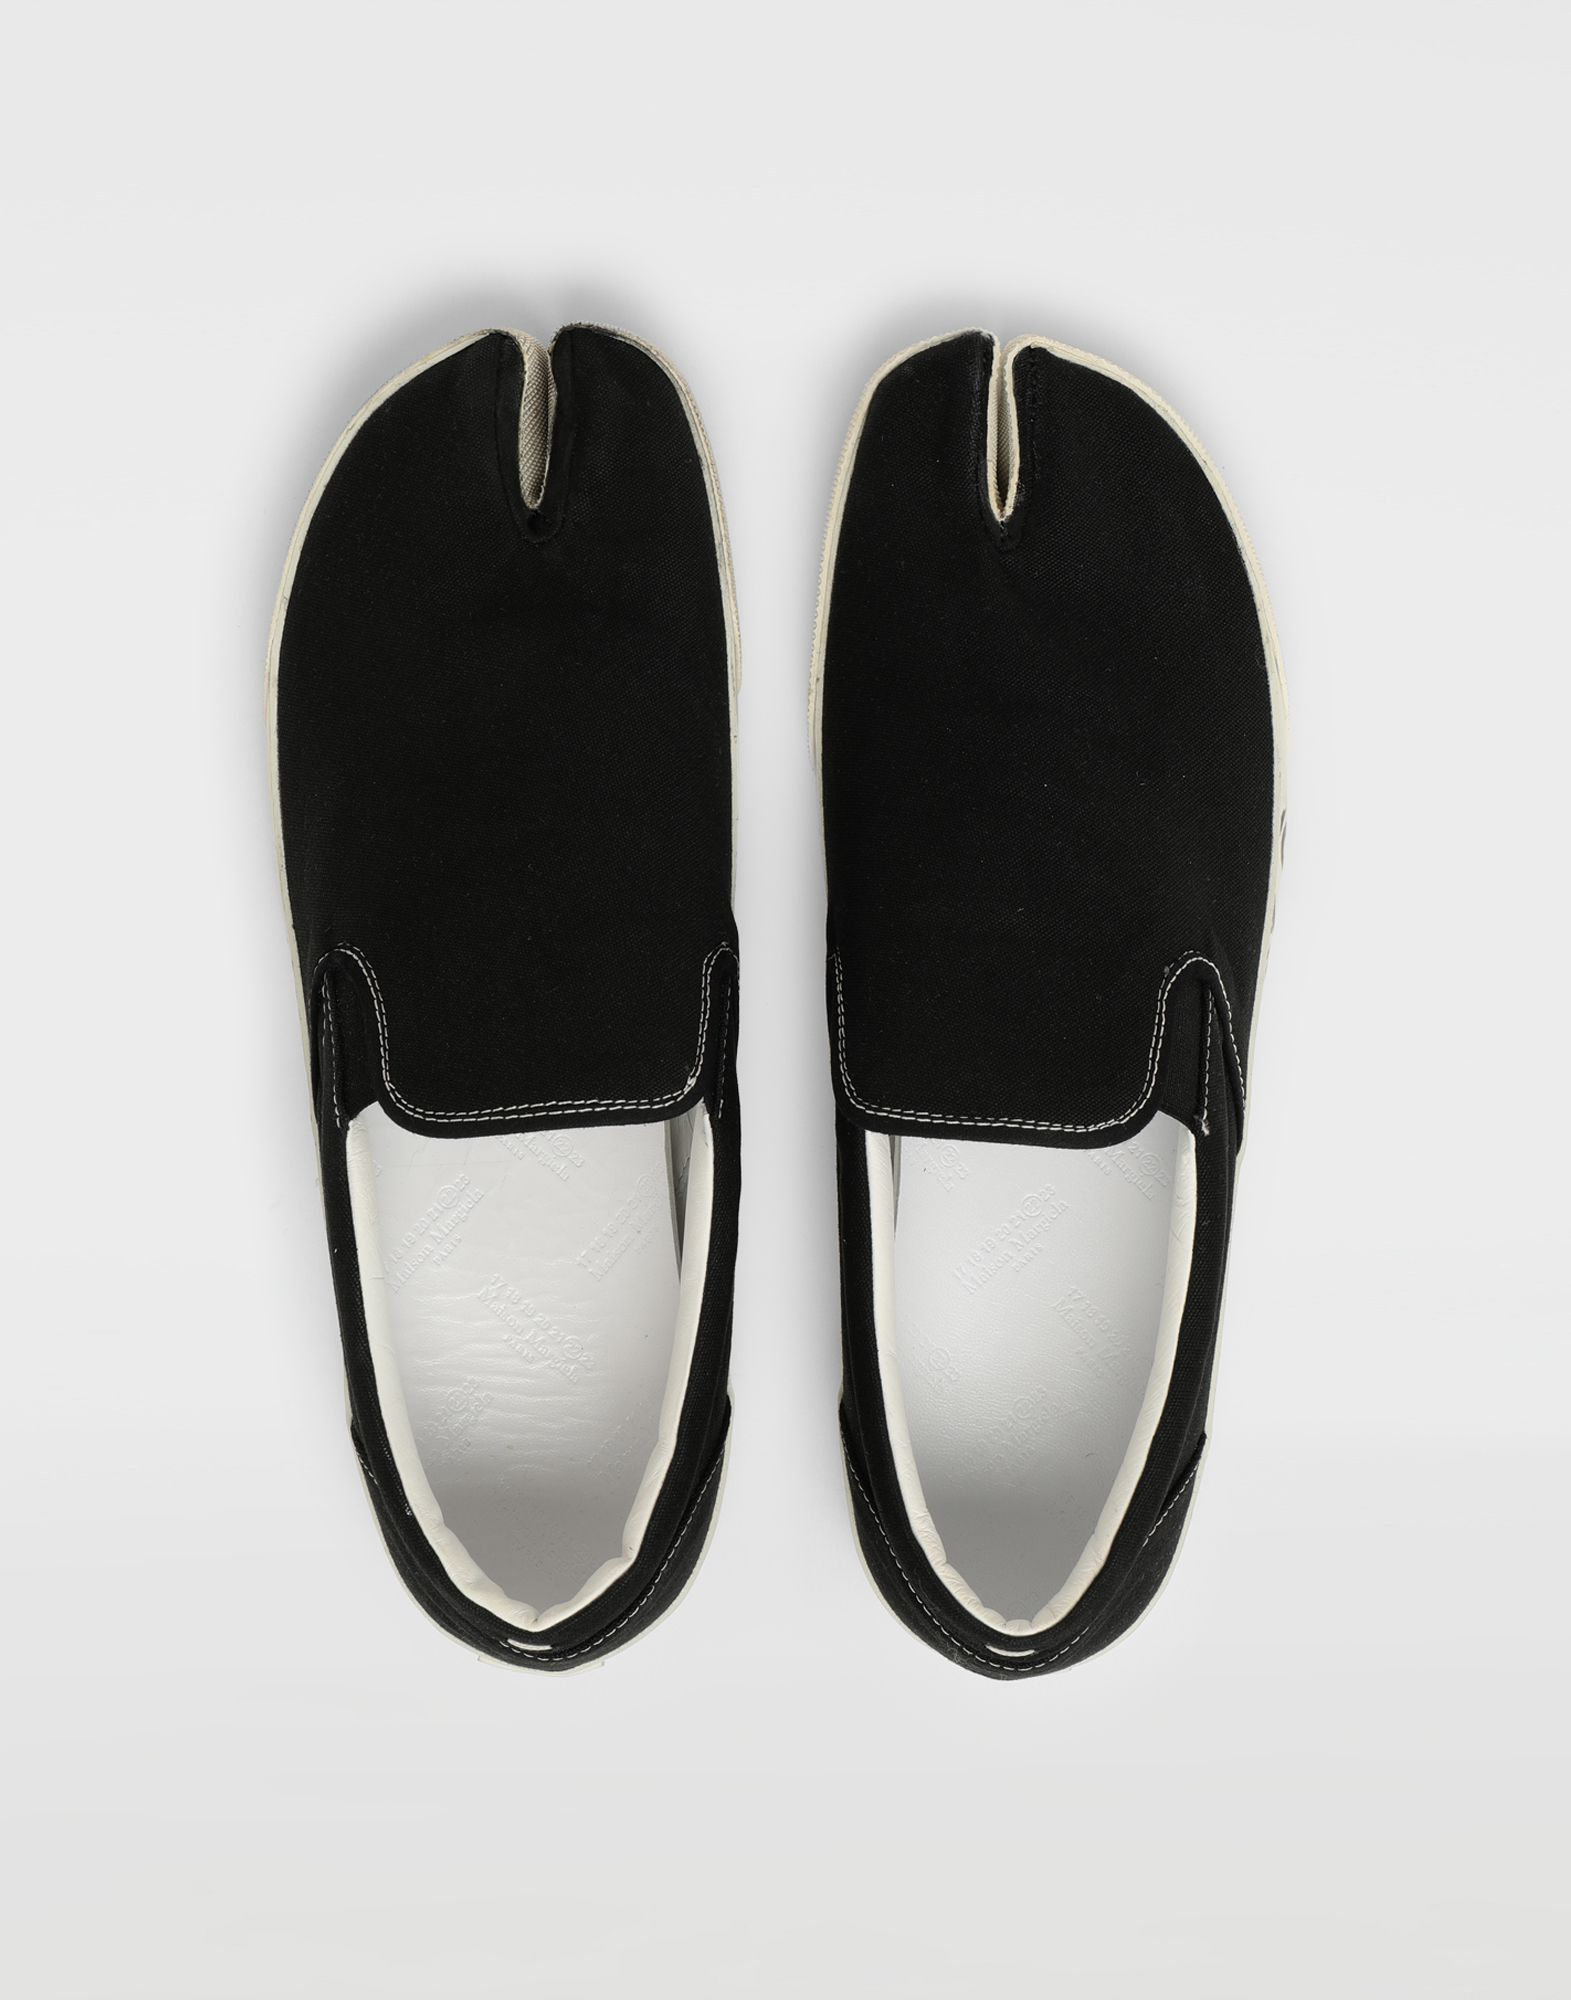 MAISON MARGIELA Tabi slip-on shoes Sneakers Tabi Man d